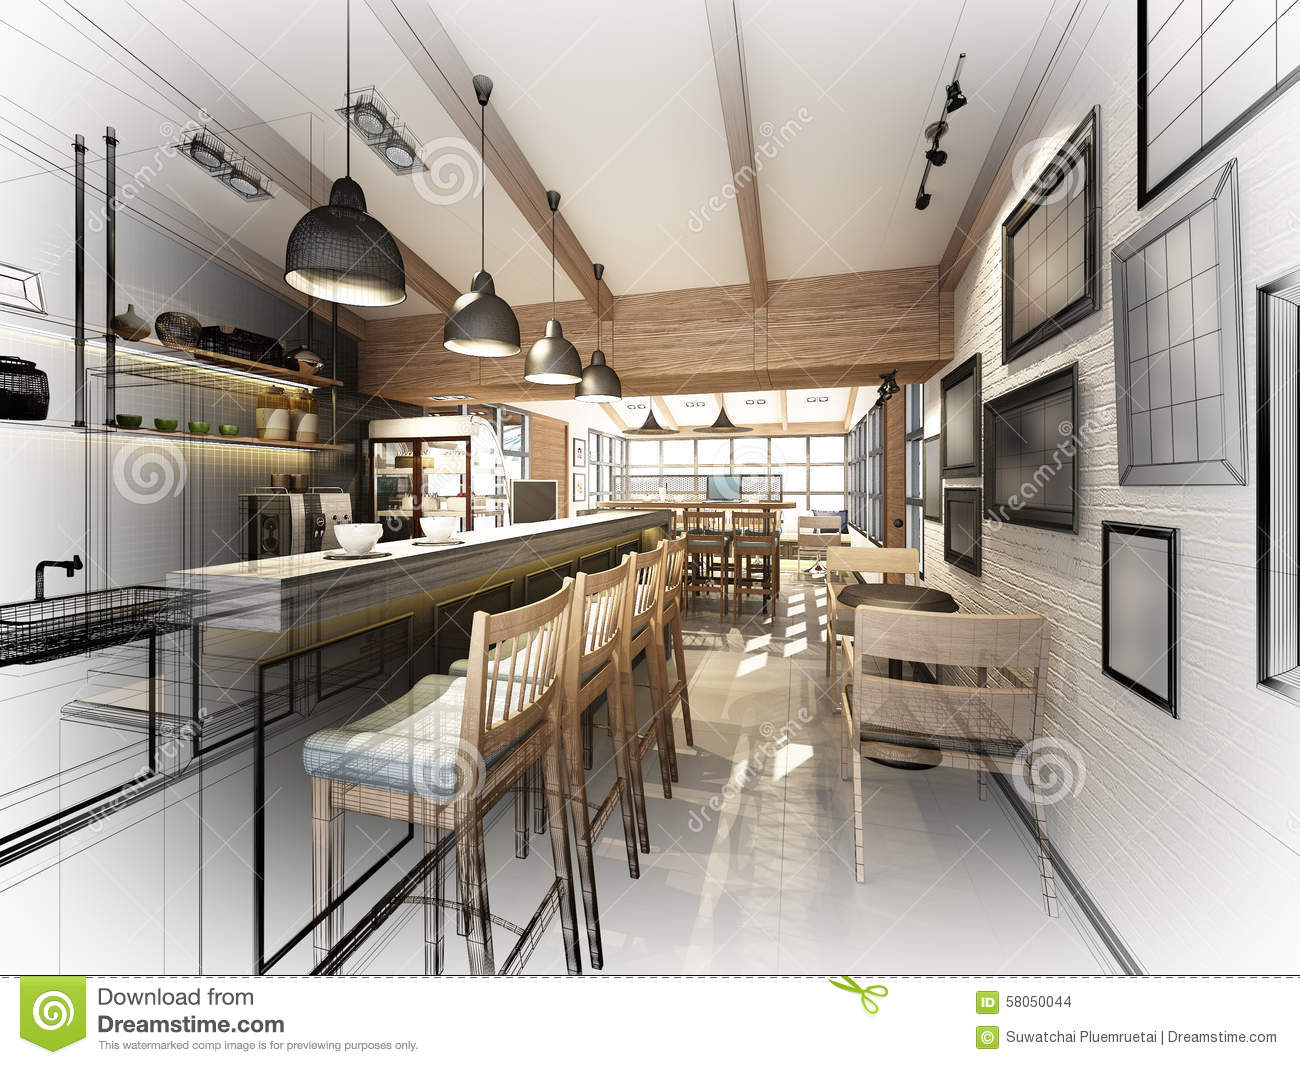 Stock Illustration Sketch Design Coffee Shop Dwire Frame Render Image58050044 on Small Coffee Shop Floor Plans